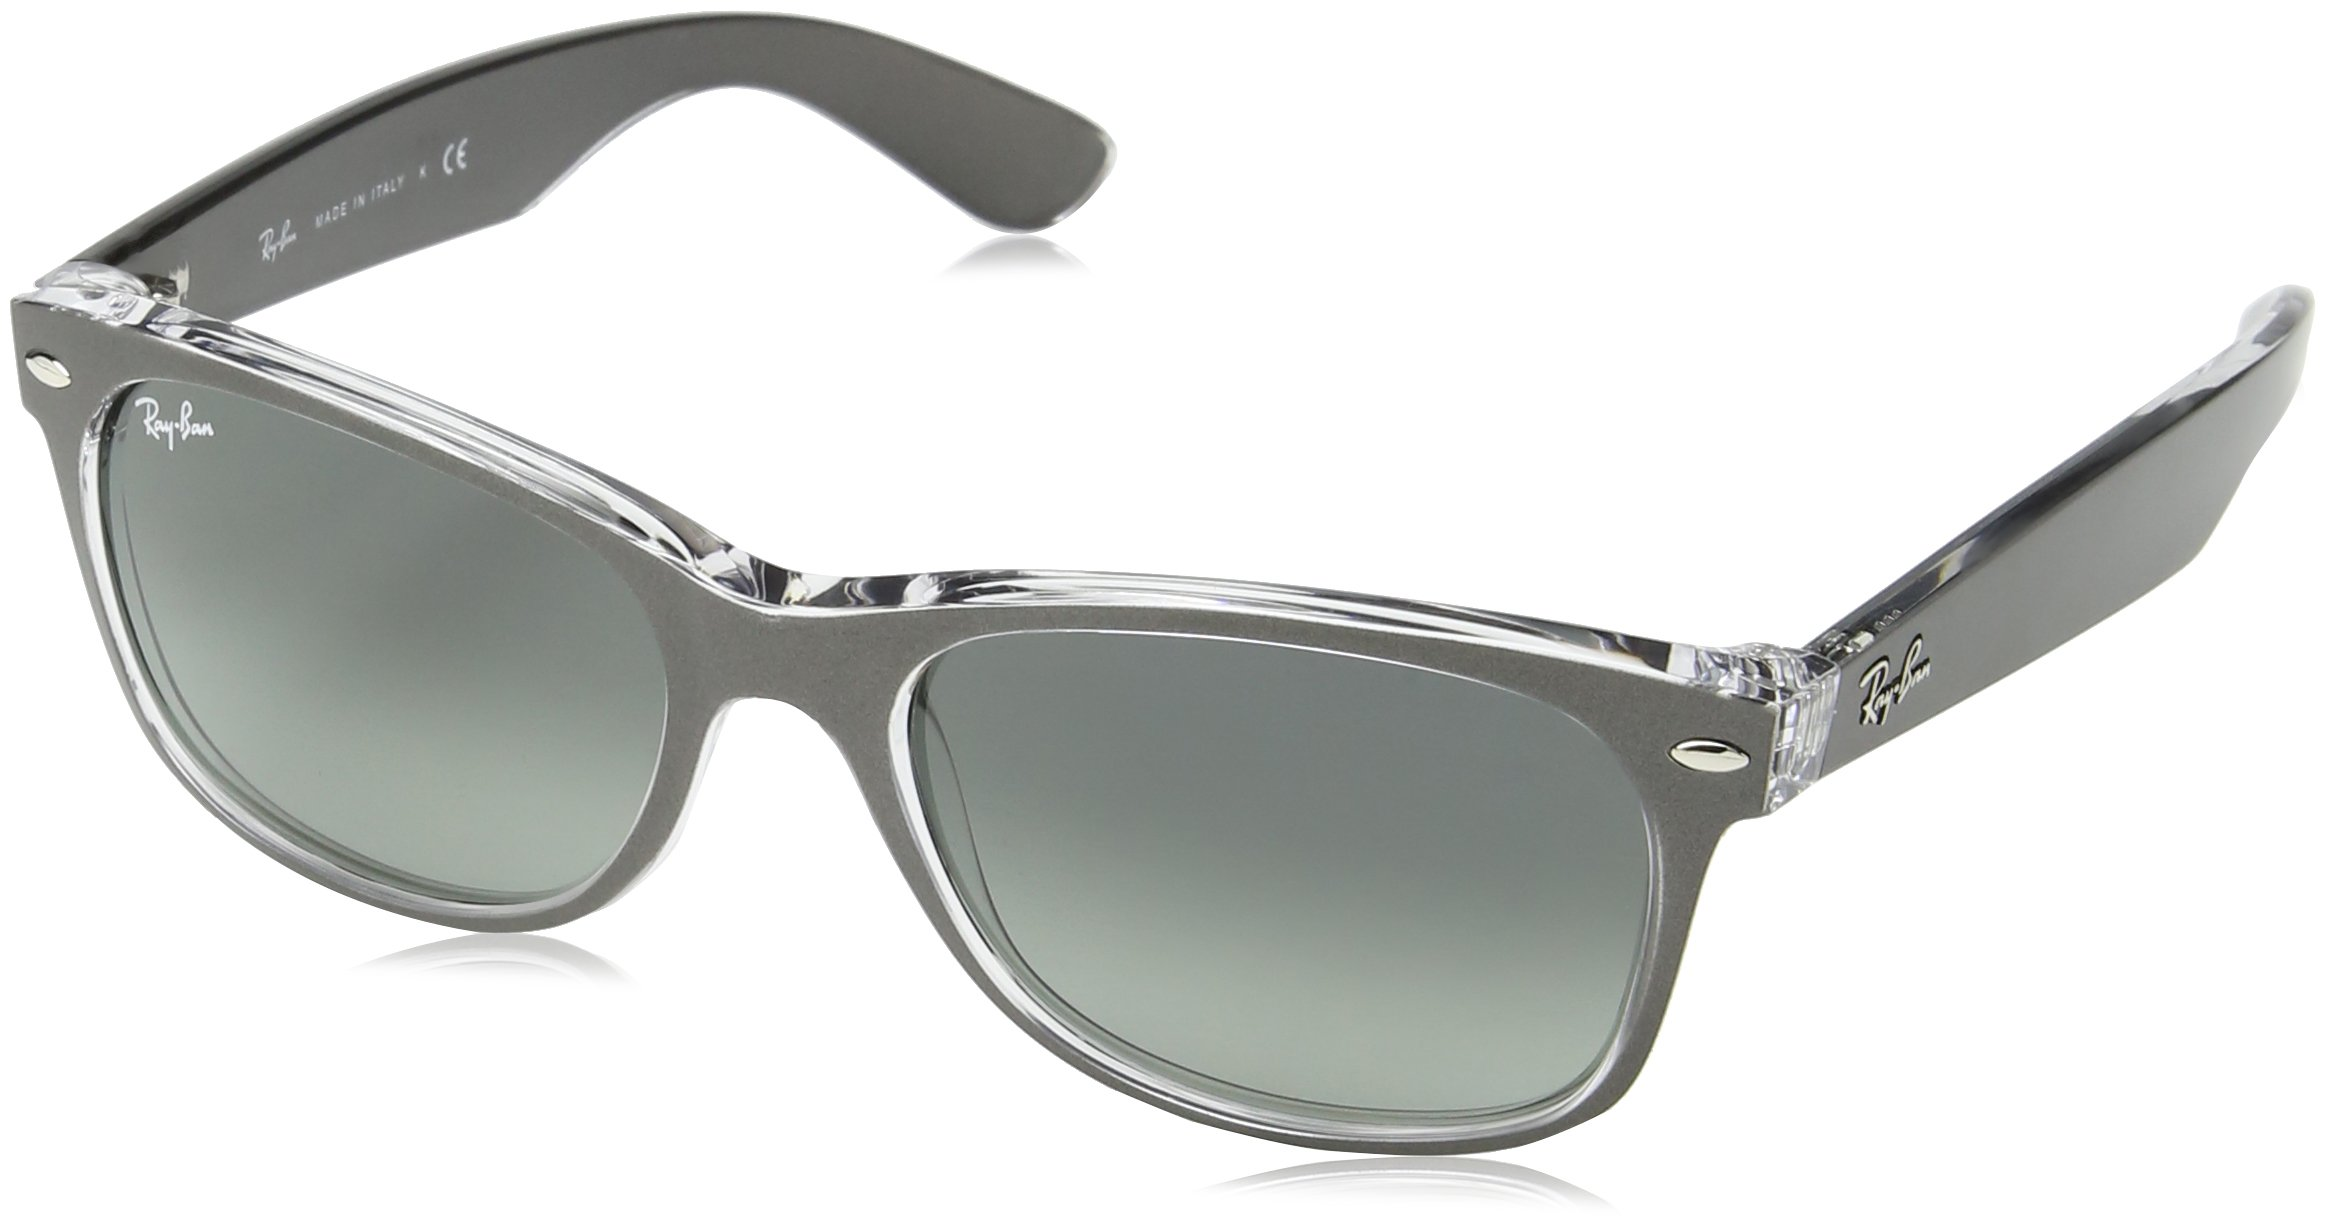 RAY-BAN RB2132 New Wayfarer Sunglasses, Brushed Gunmetal On Transparent/Grey Gradient, 55 mm by RAY-BAN